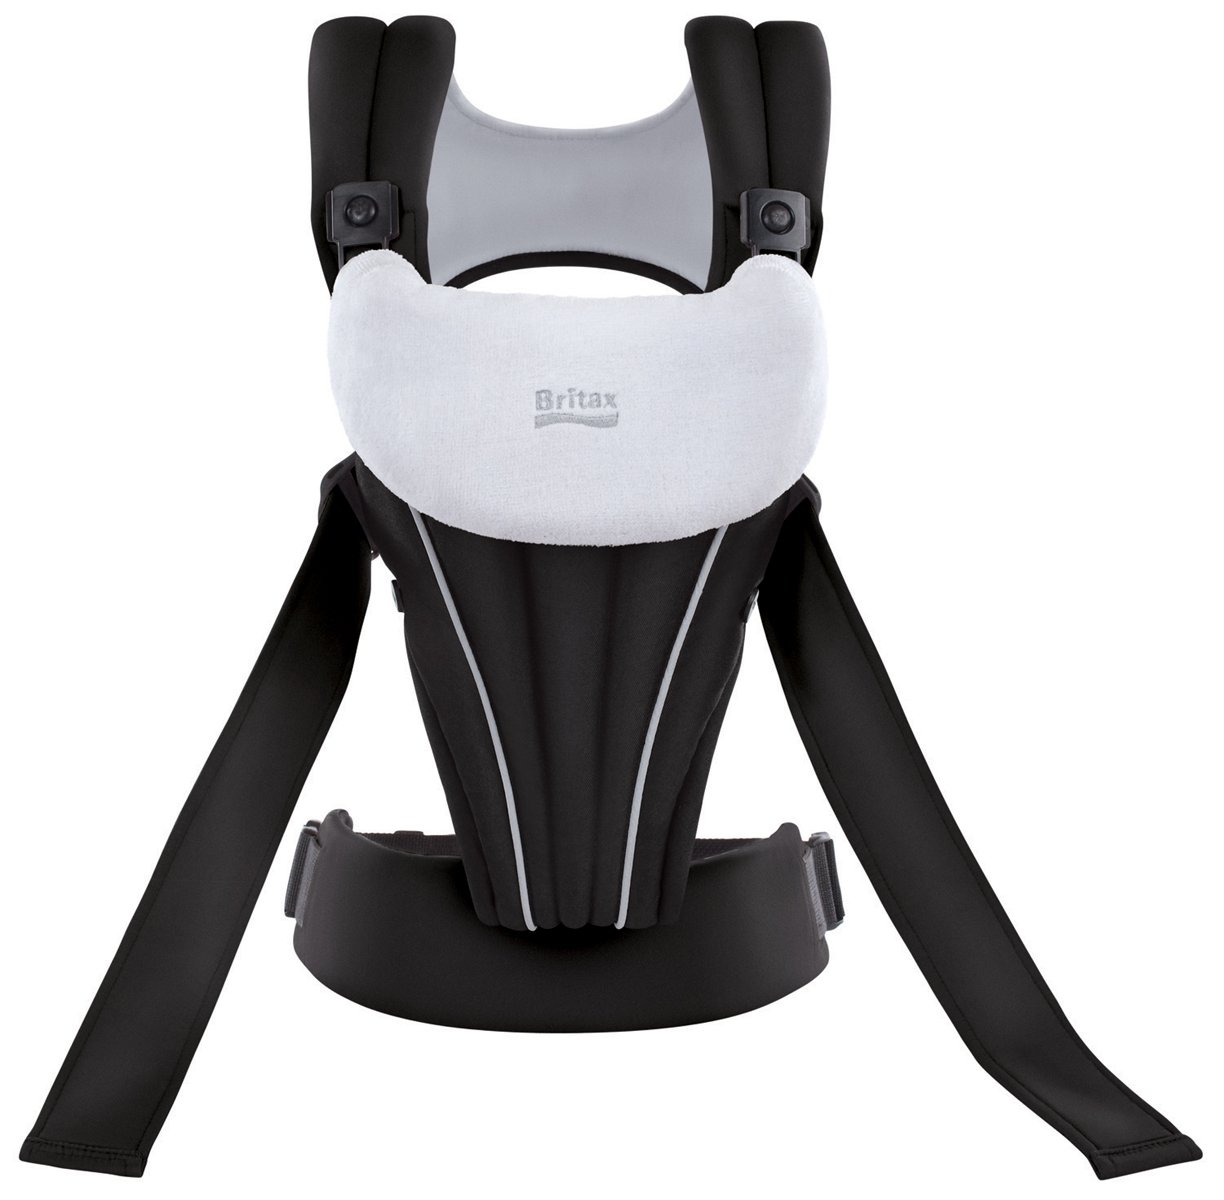 Britax Baby Carrier, Black $73.79